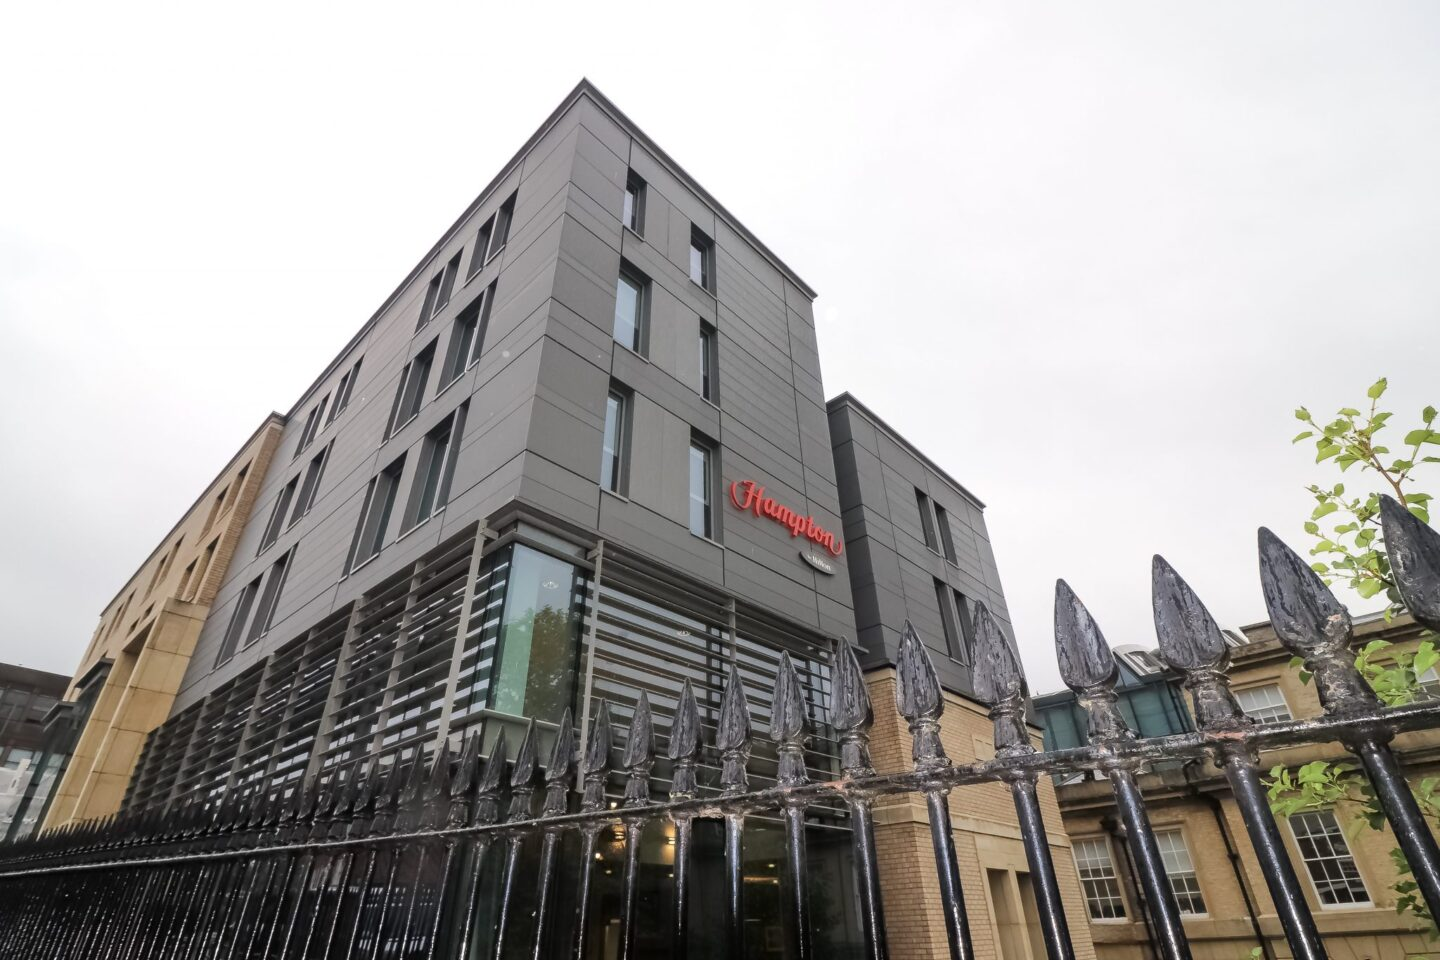 England: Real Travel Moments with Hampton by Hilton